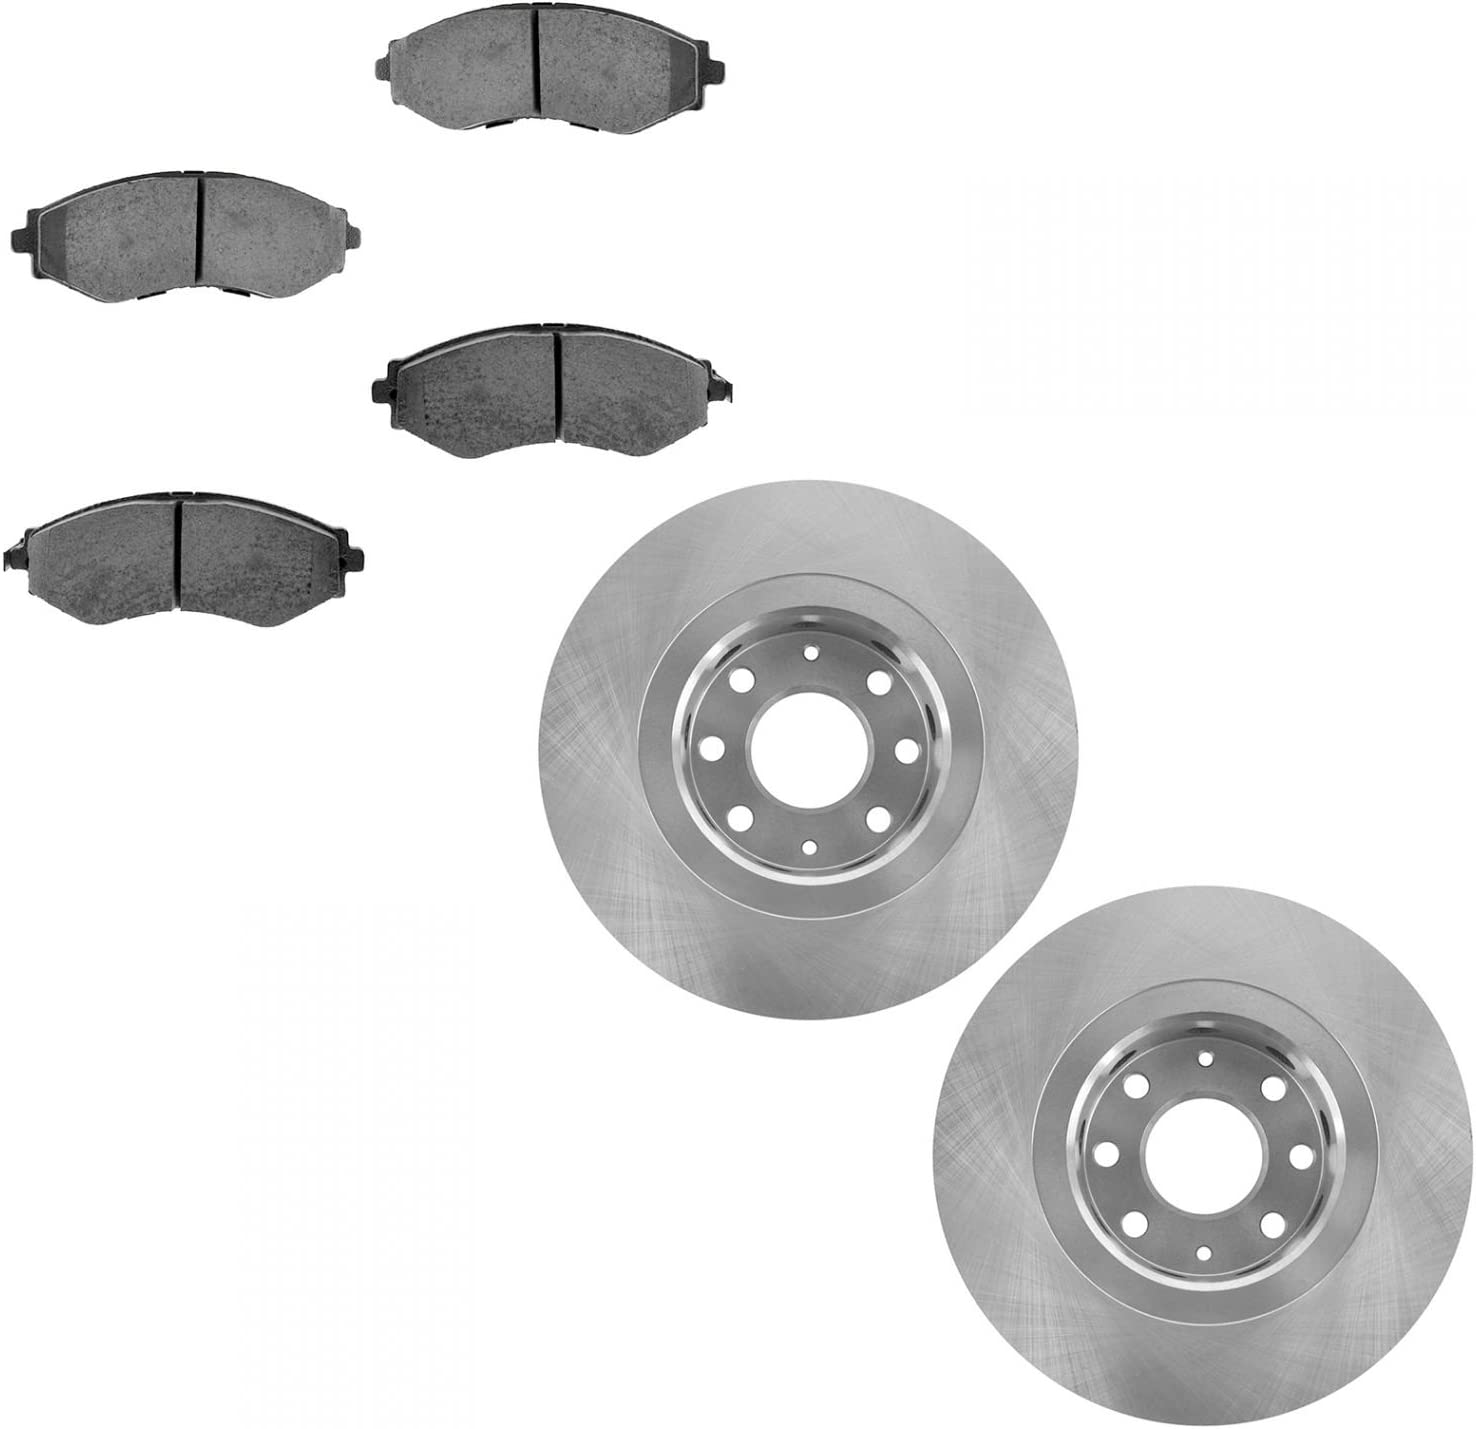 Ceramic Pad Brake cheap Rotor Front Set Pon Spark for Kit Aveo Chevy overseas